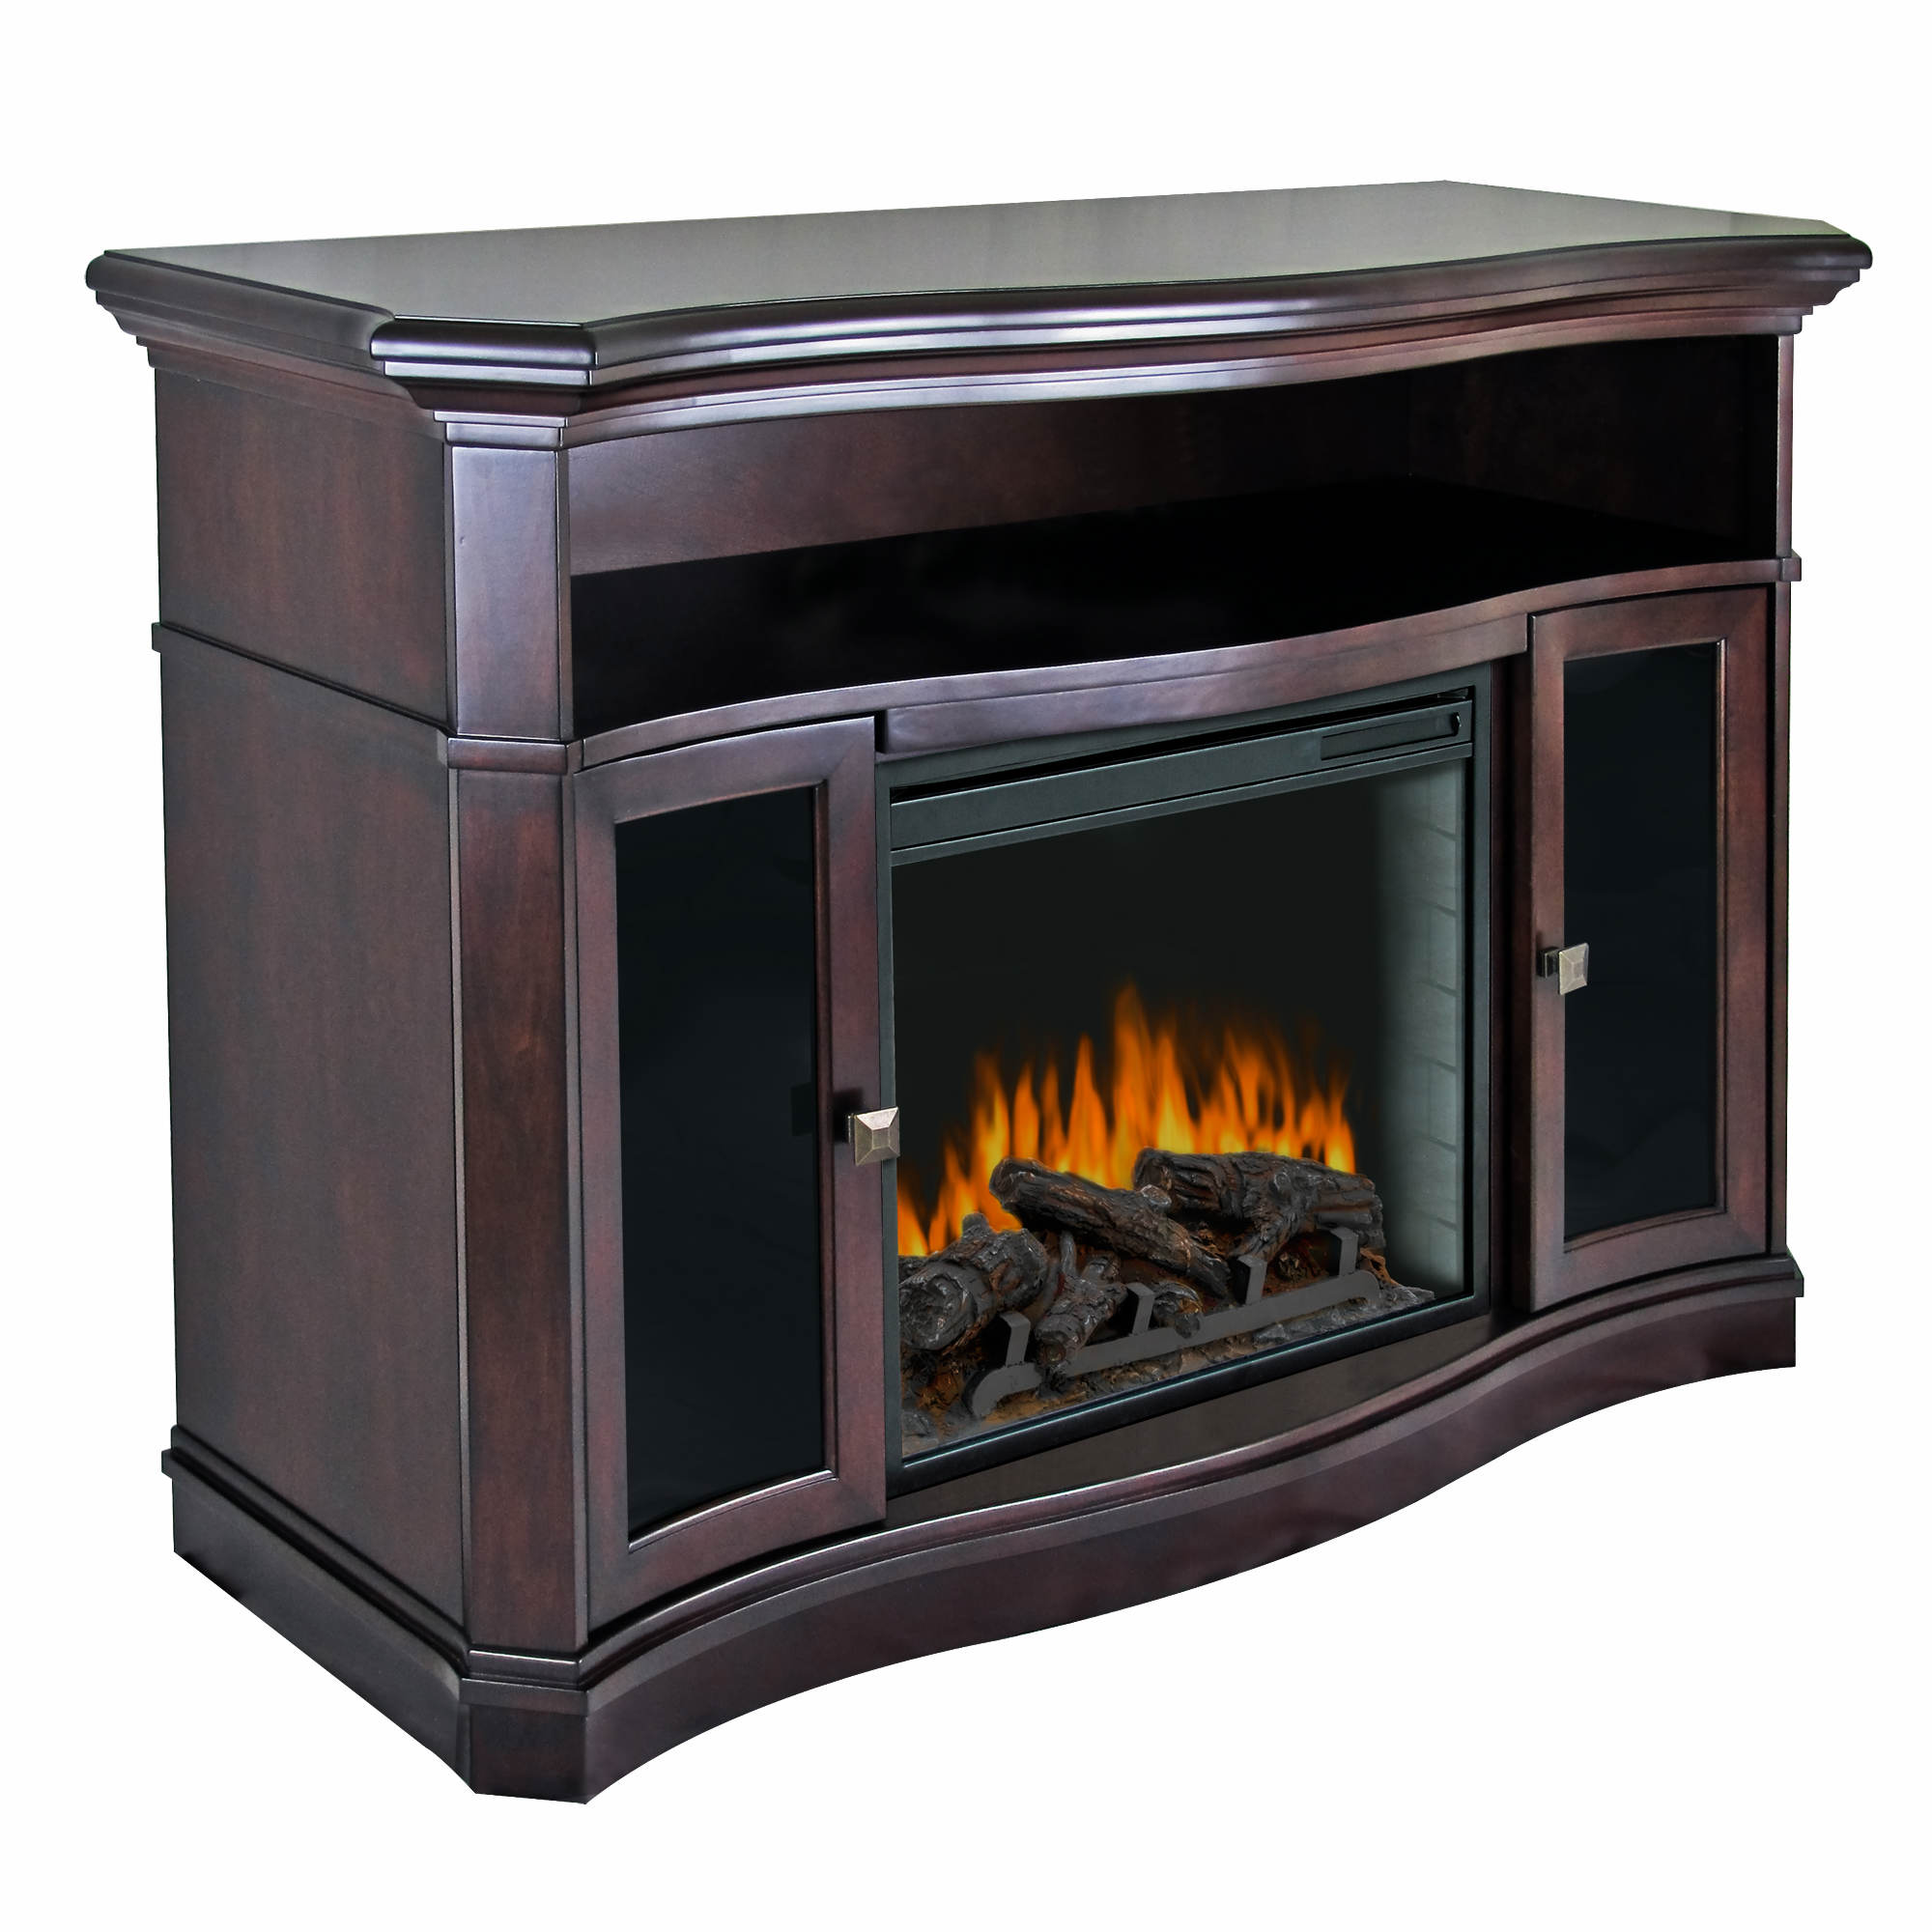 Pleasant Hearth Wheaton Ventless Electric Fireplace and Media Center - Merlot